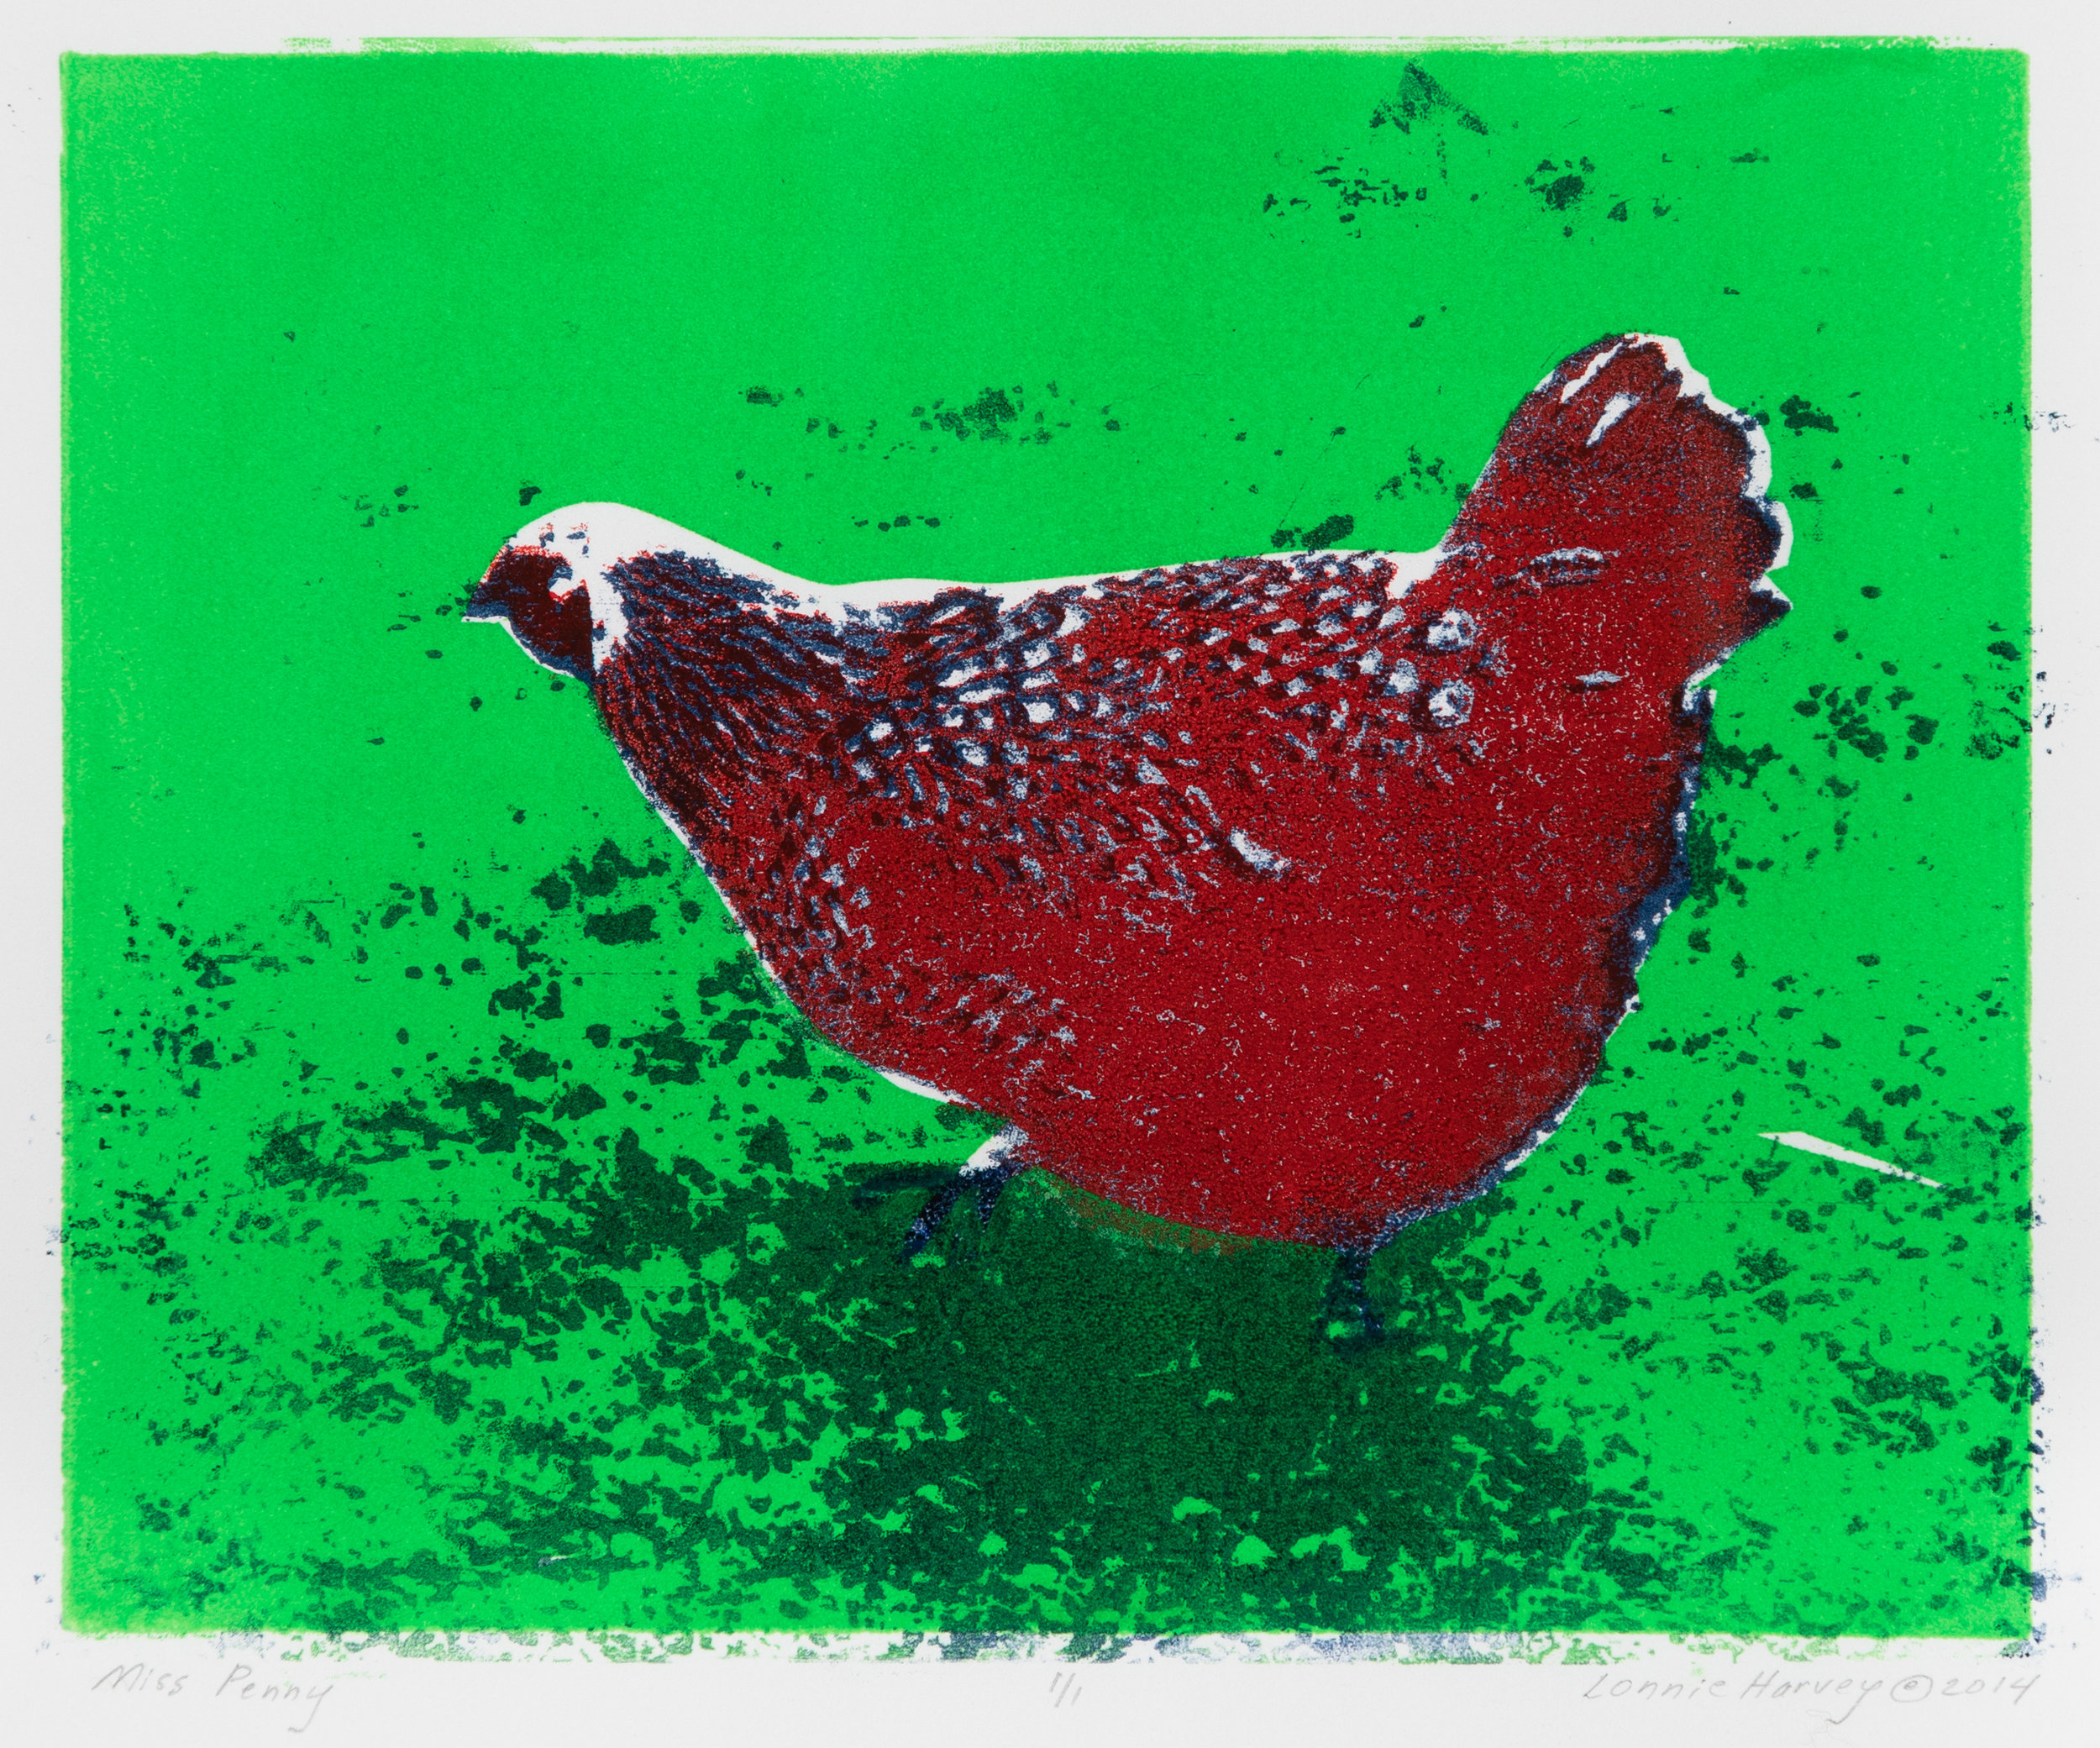 """Miss Penny"", monoprint, 15.25"" x 16.75"", $250 (framed)"